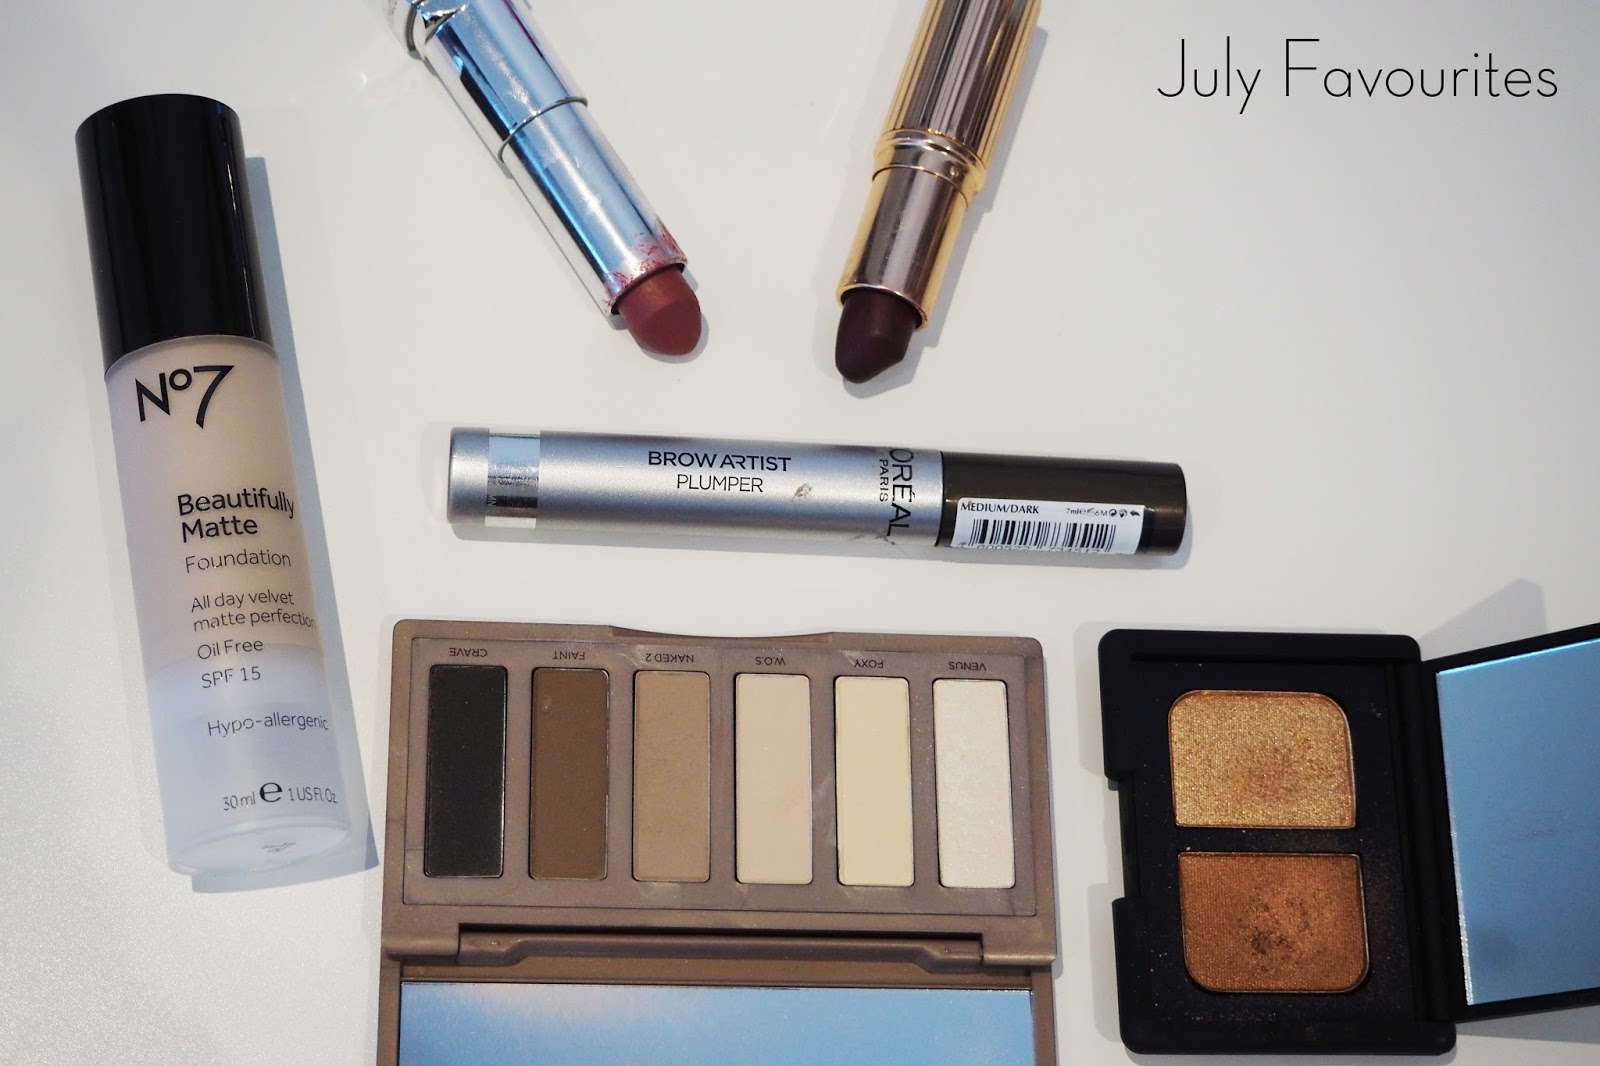 july favourites, no7 beautifully matte foundation, l'oreal brow artist plumper, maybelline creamy matte lipstick touch of spice, charlotte tilbury matte revolution lipstick glastonberry, urban decay naked basics palette, nars eyeshadow duo isolde